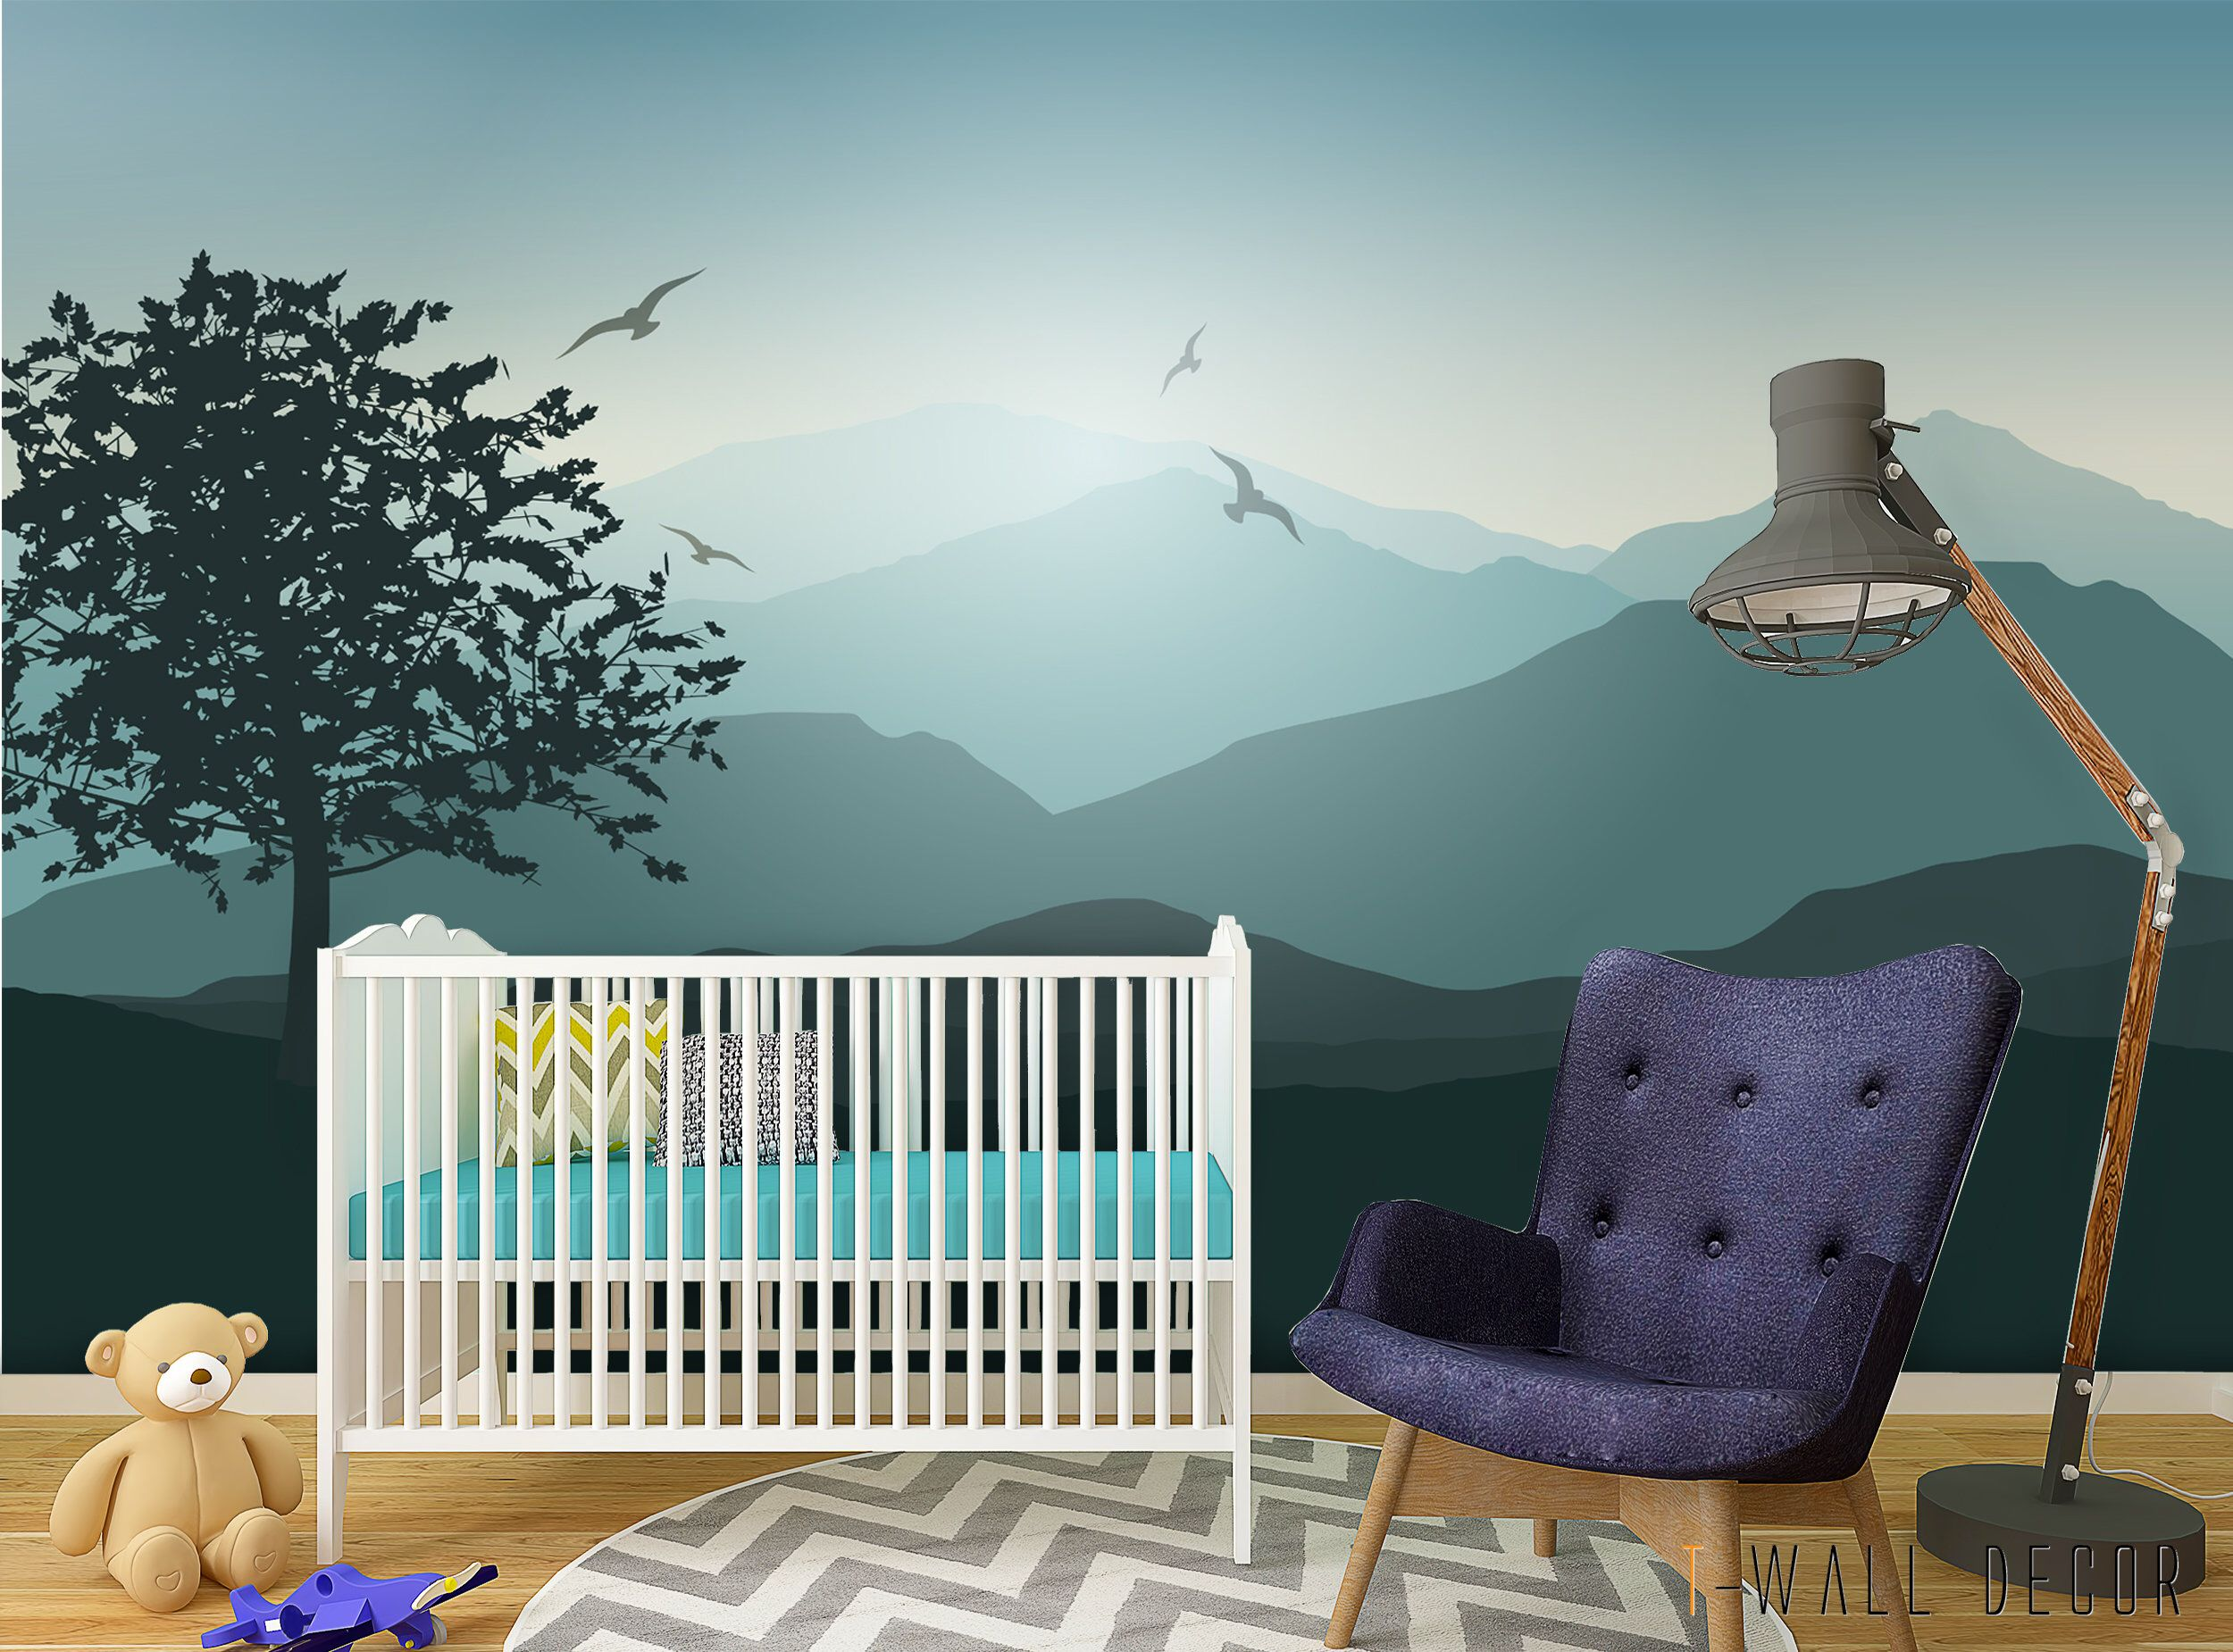 SelfAdhesive Mountain Wall Mural, Peel & Stick Nursery